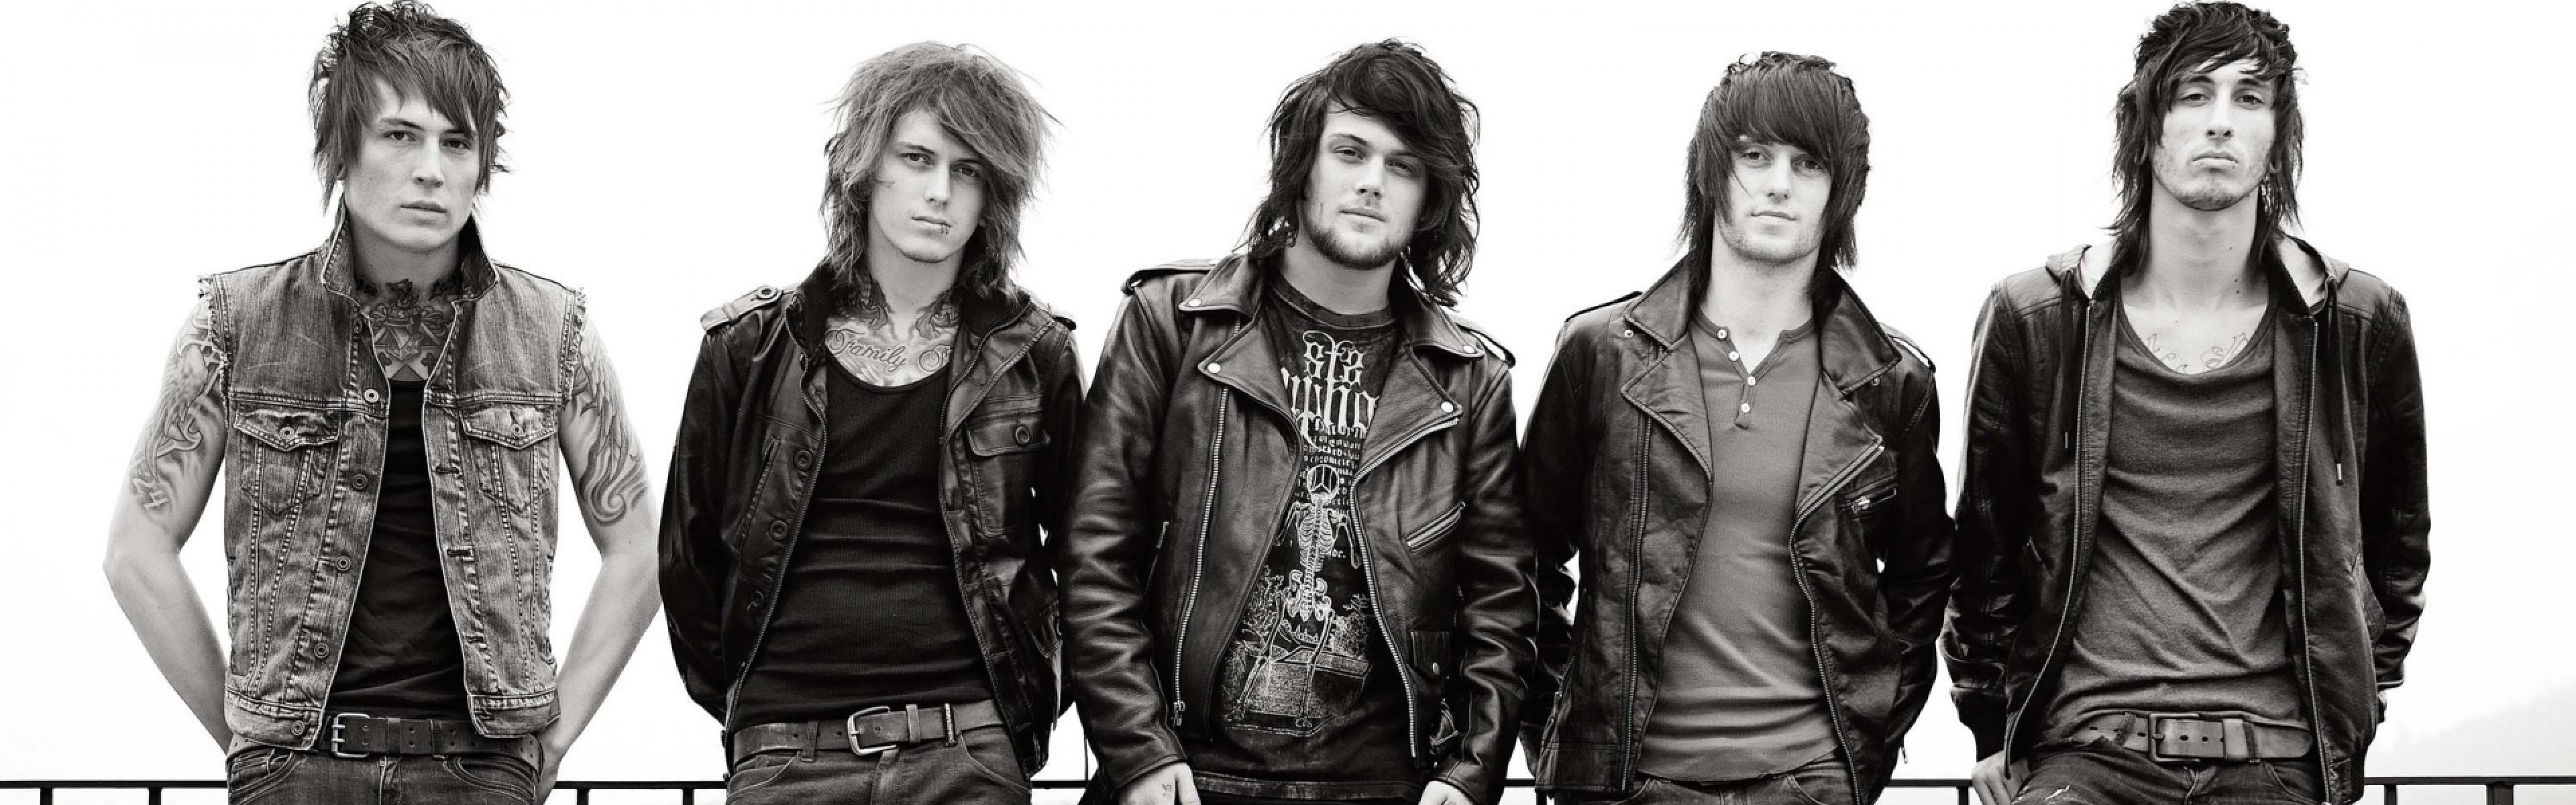 3840x1200 36149946 Asking Alexandria Wallpapers